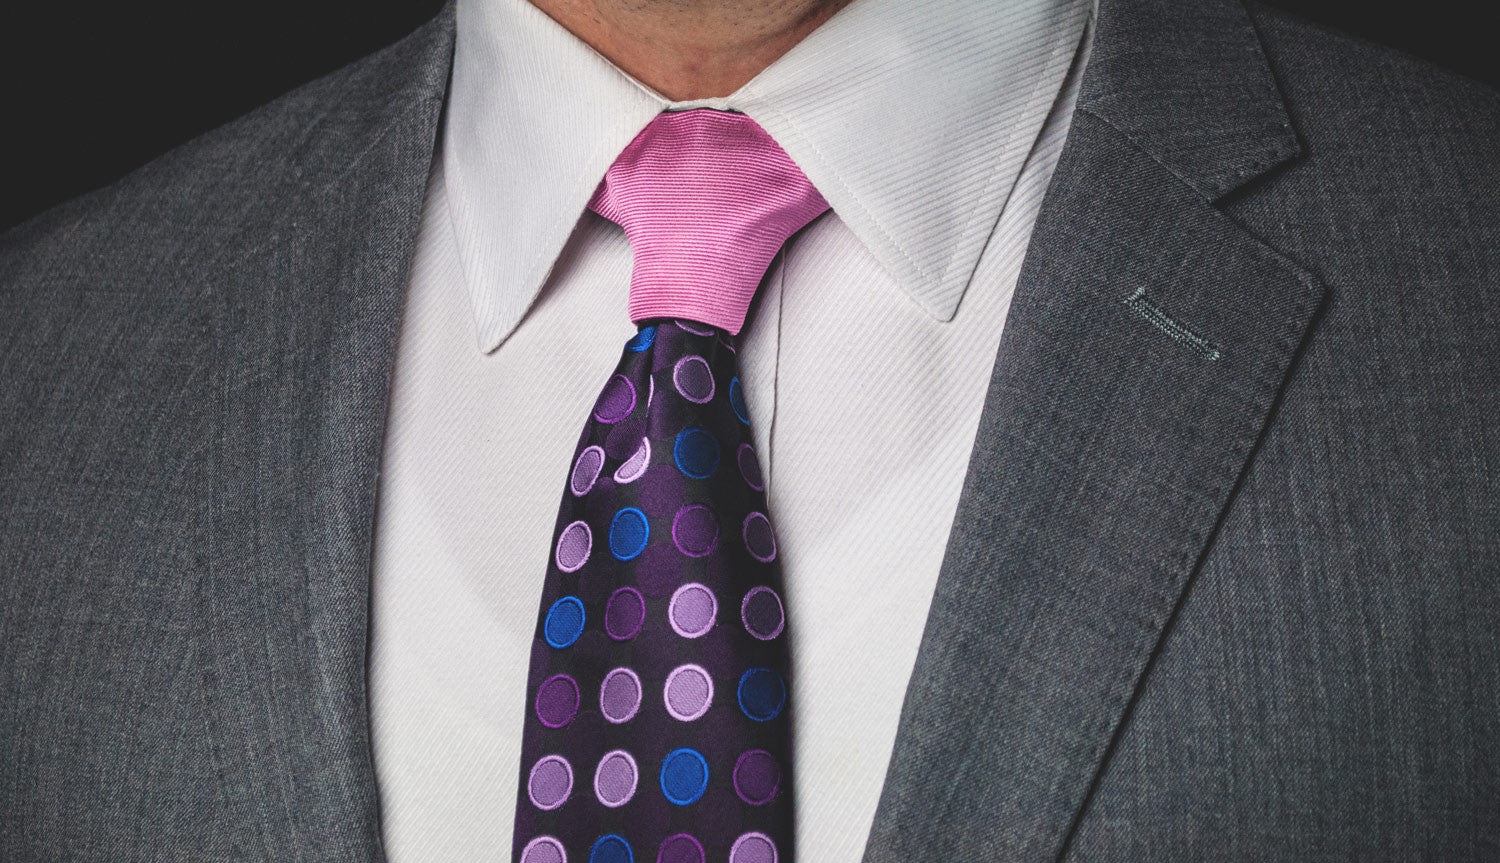 The Pink Proper Knot™